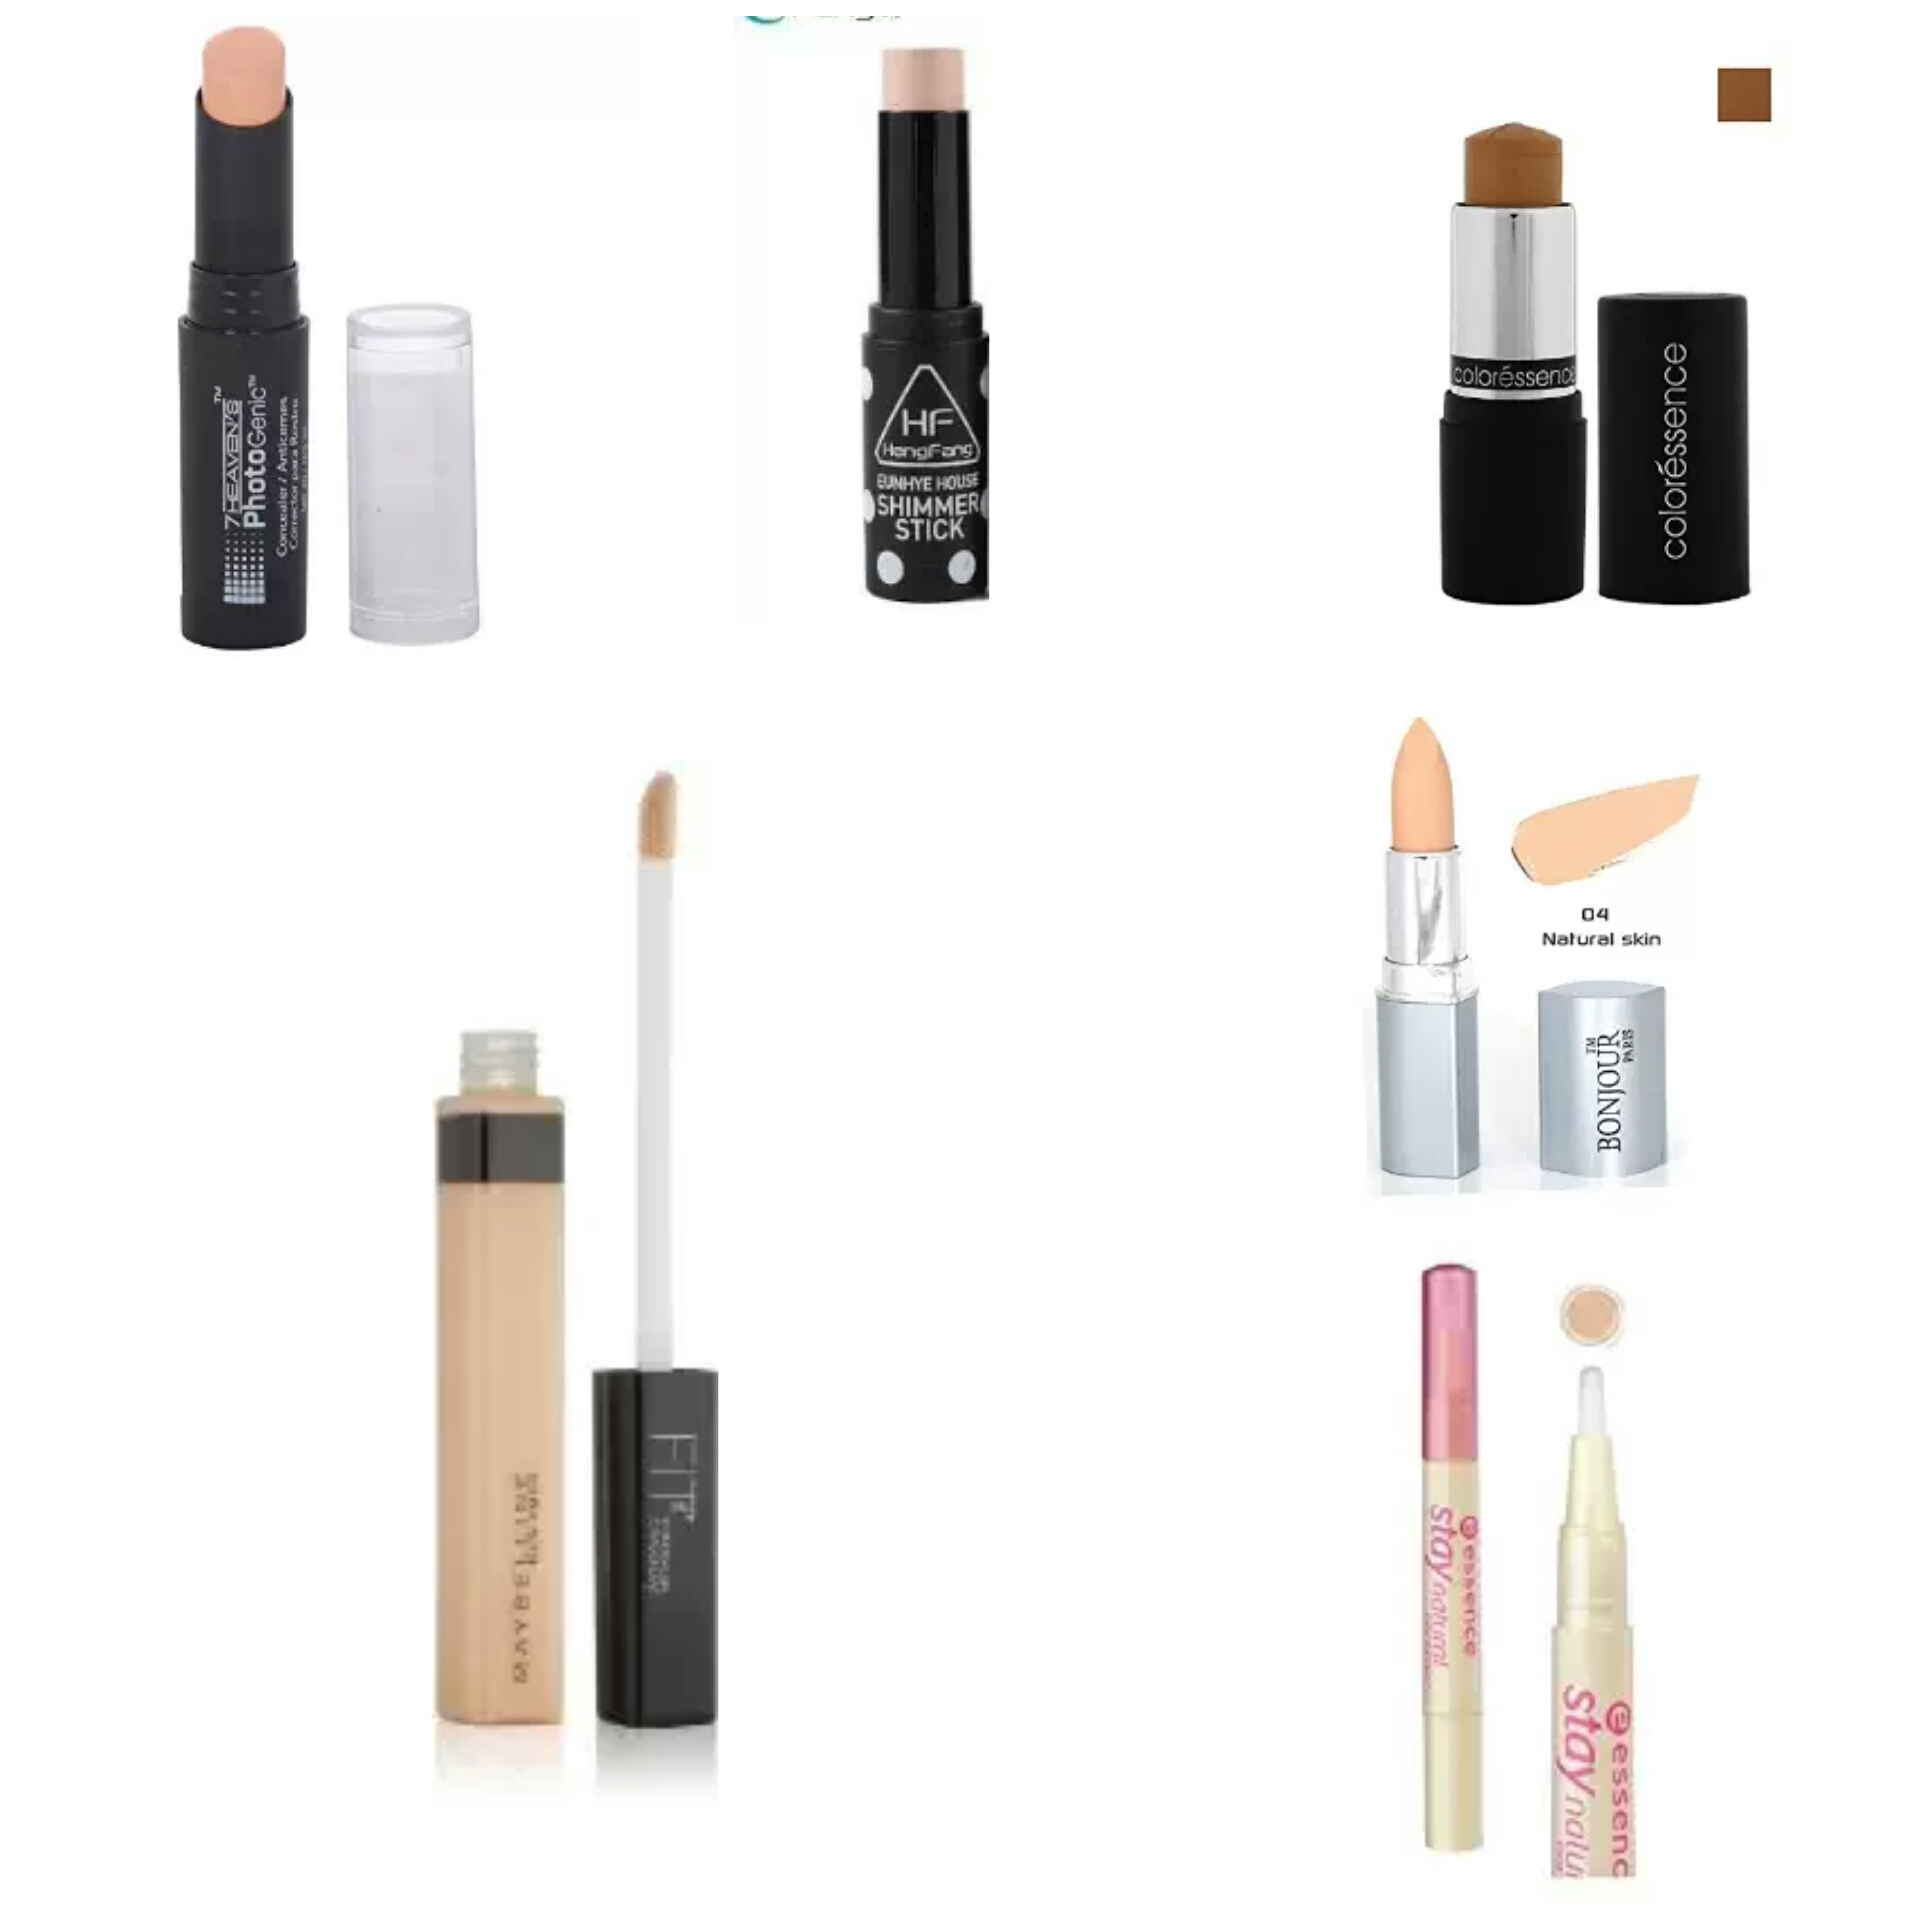 Affordable Makeup Products For College Going Girls | Affordable Concealers in India | Drugstore Concealers in India | High Coverage Drugstore Concealers In India